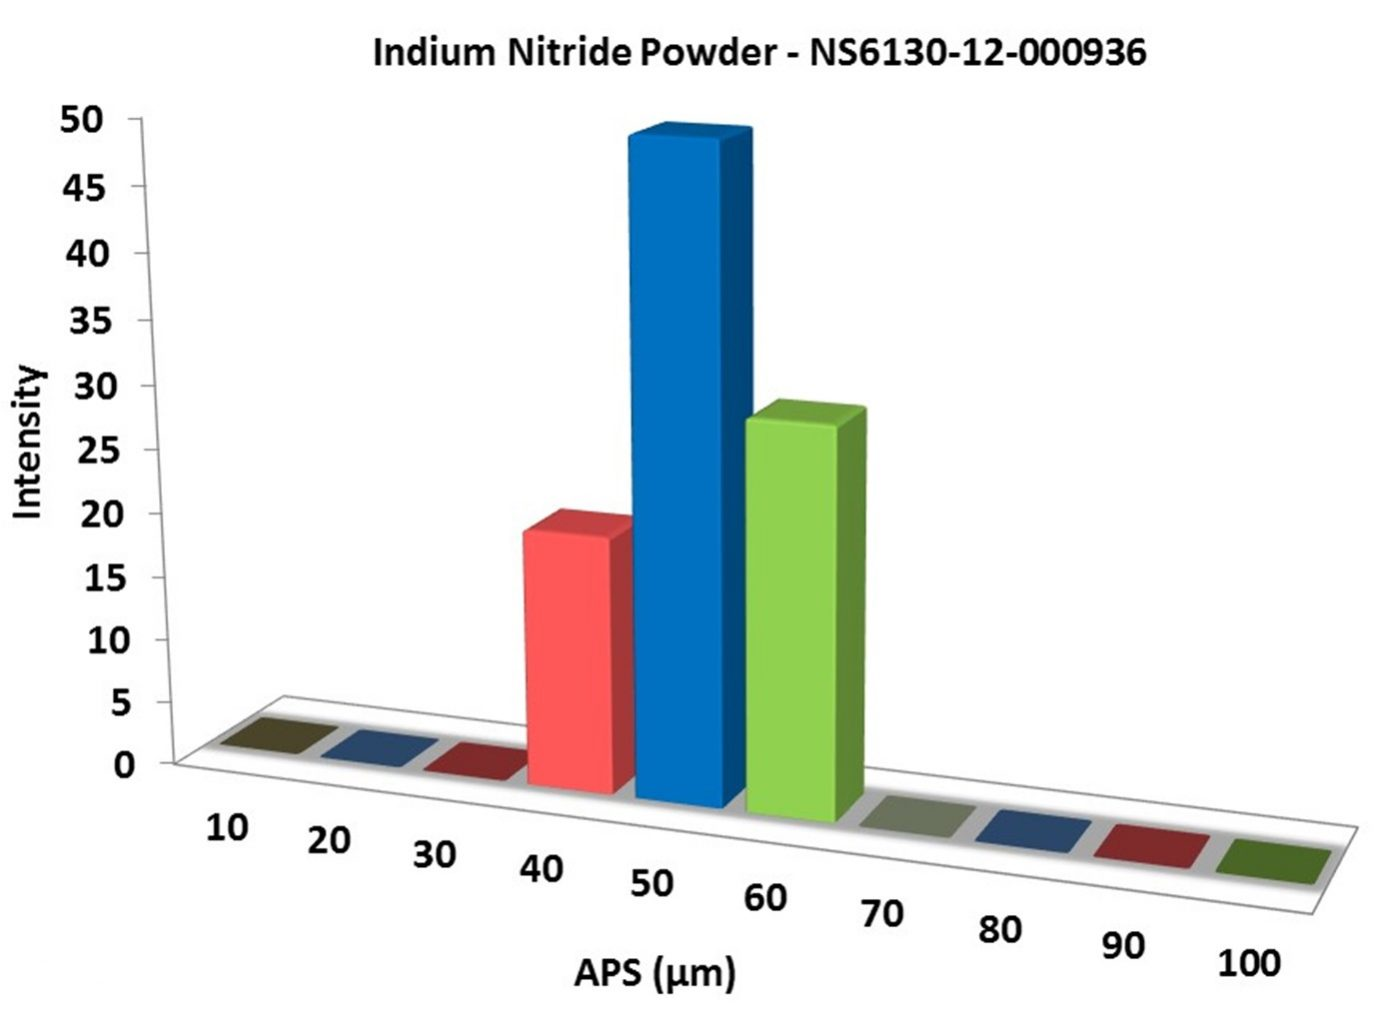 Particles Size Analysis – InN Powder